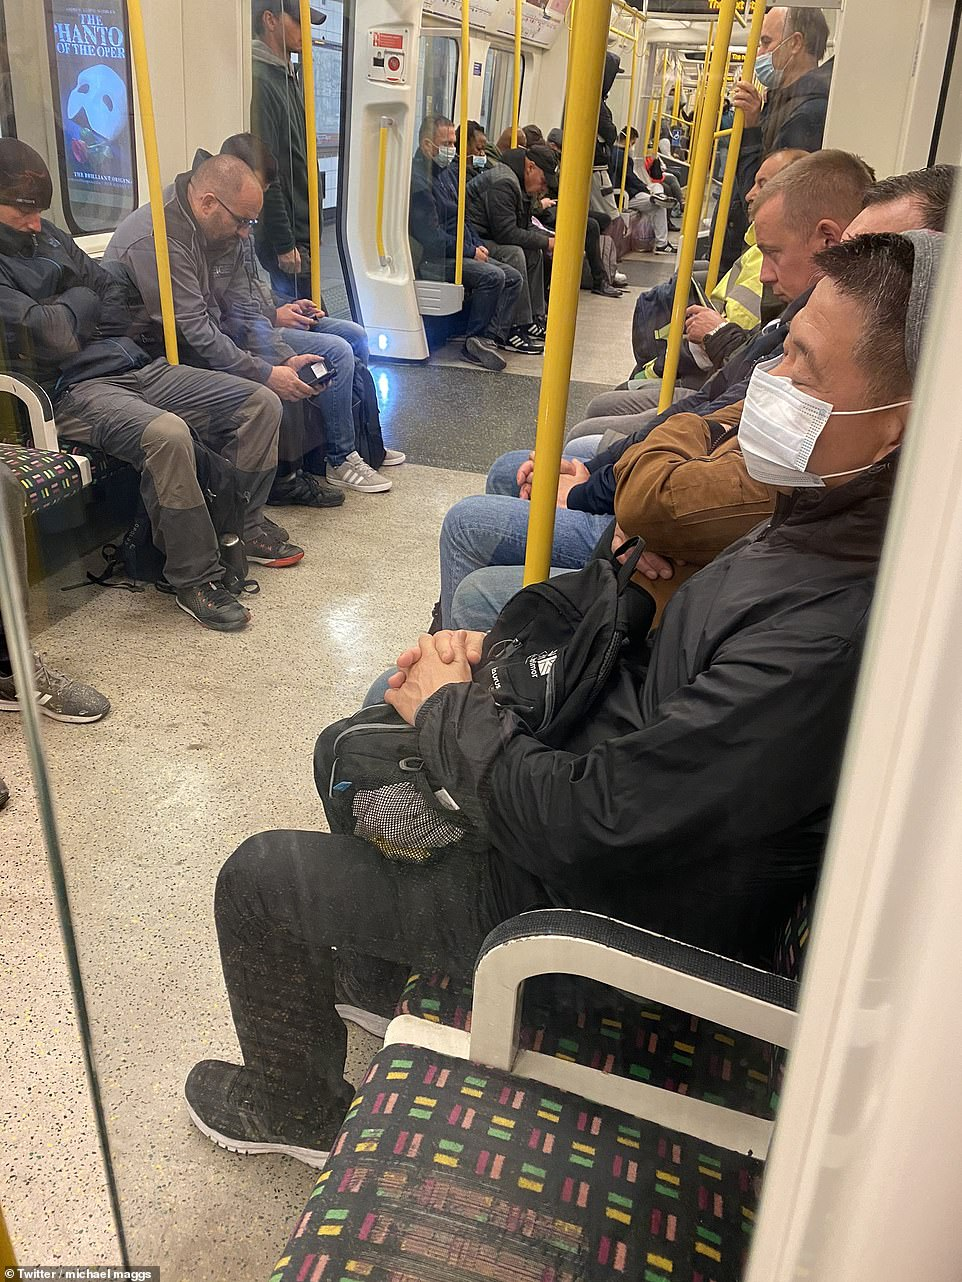 London: Commuter Michael Maggs tweeted this picture of a packed Tube carriage at 6am this morning and said: '@SadiqKhan how we meant to social distance with your terrible service you are running. Had to wait 15 mins to get in this. You are putting lives at risk'.